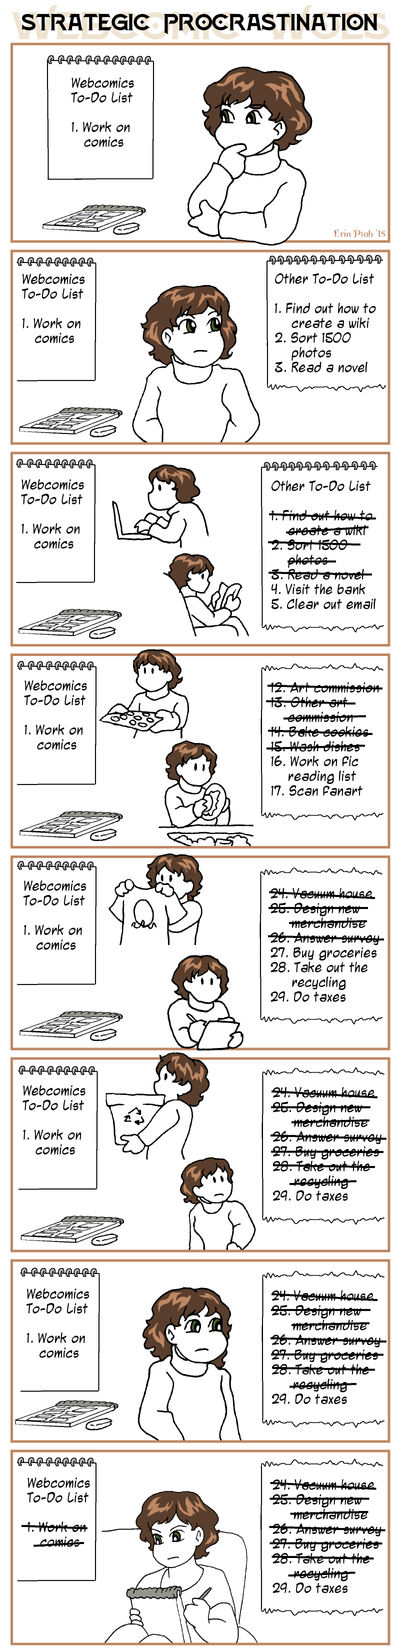 Webcomic Woes 13 - Long to-do lists